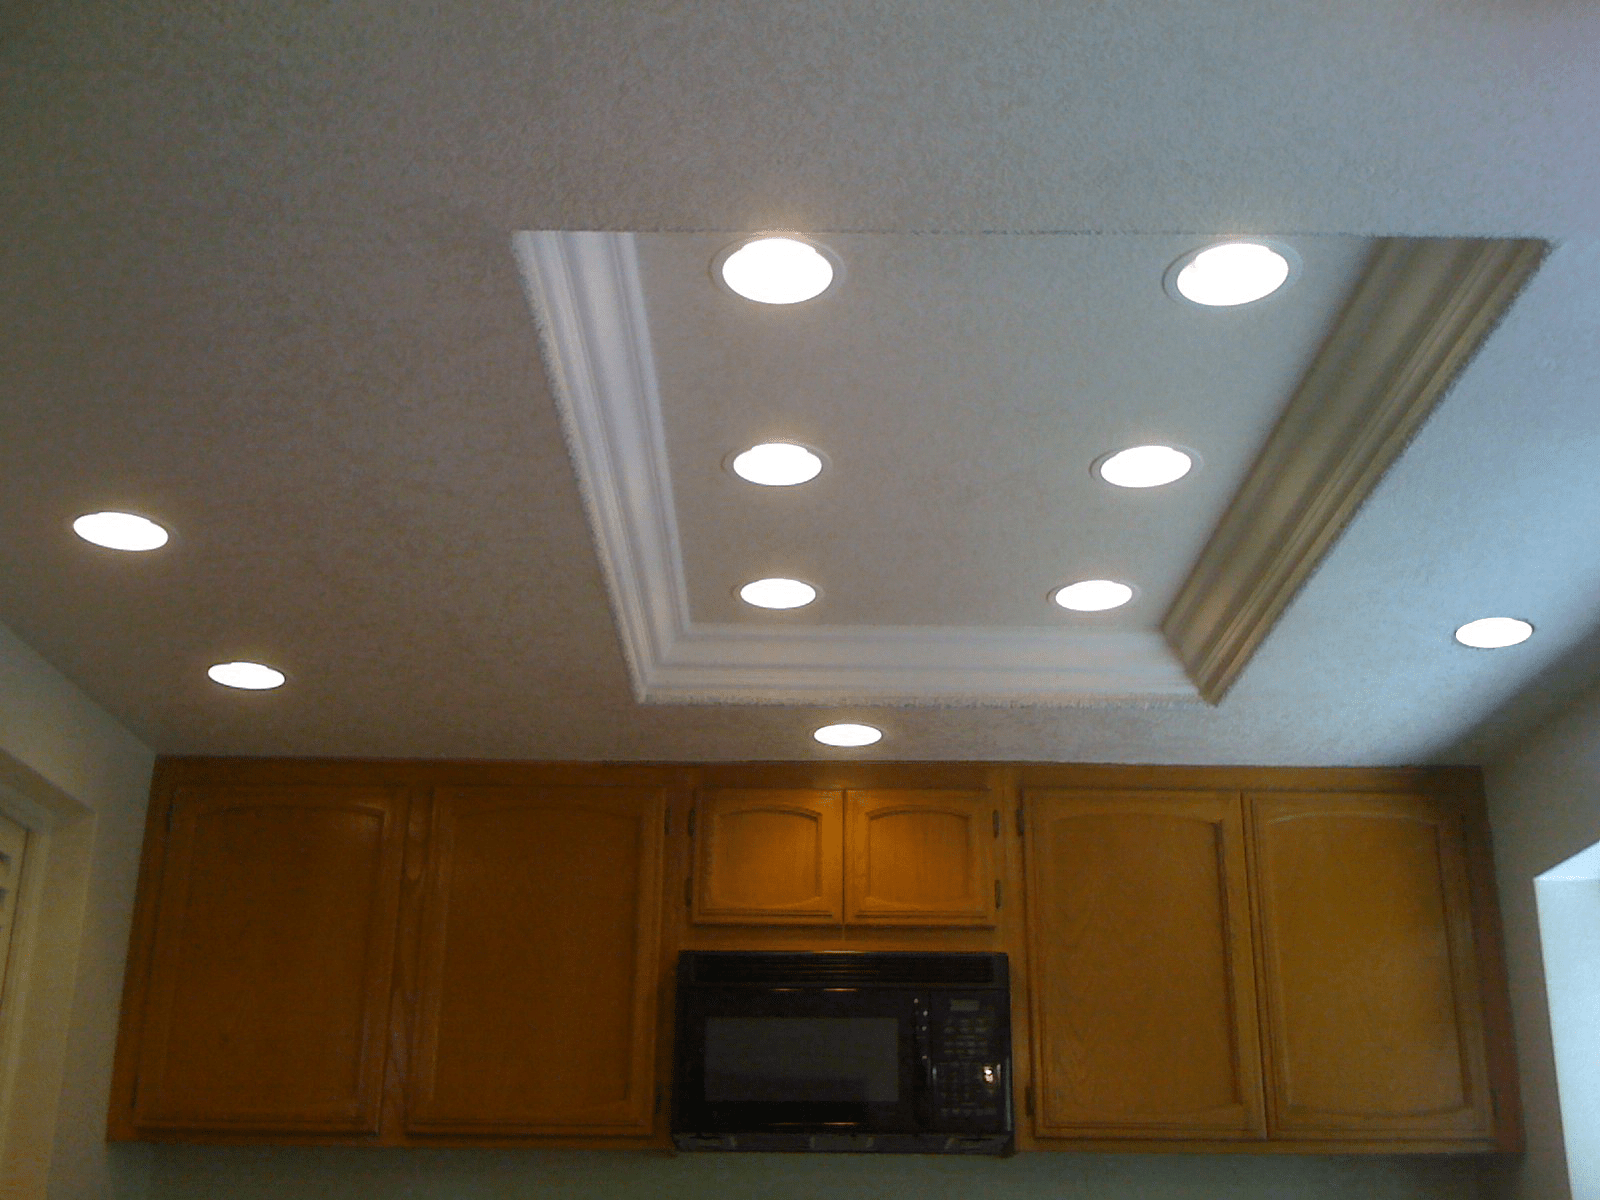 fluorescent kitchen lights How to replace recessed fluorescent kitchen lighting For the Home Pinterest Kitchen ceilings Sons and Fluorescent light fixtures